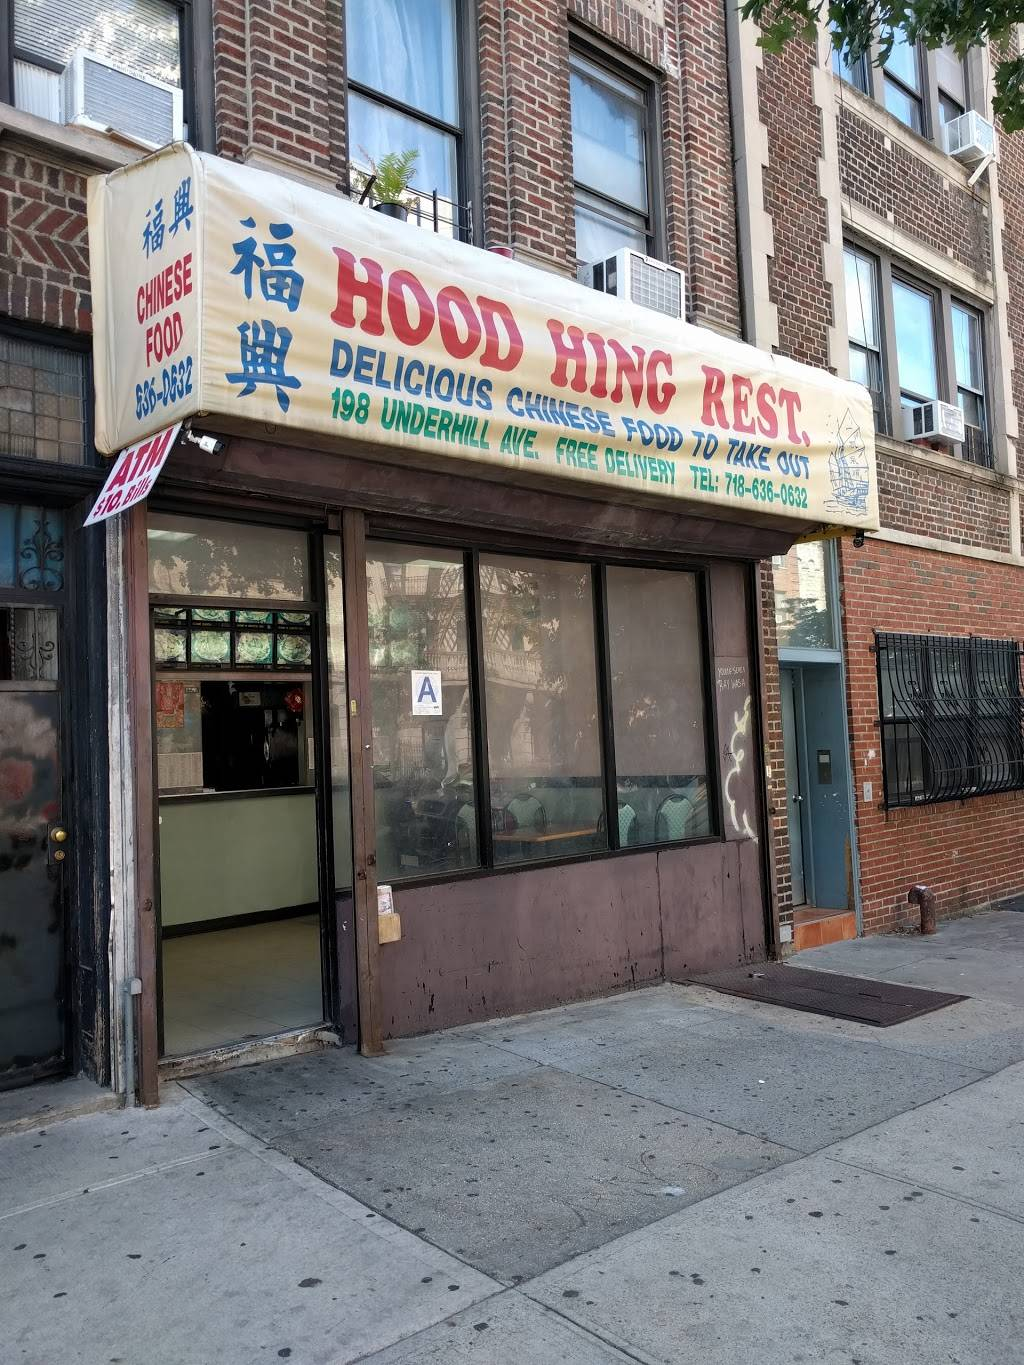 Hood Hing | restaurant | 198 Underhill Ave, Brooklyn, NY 11238, USA | 7186360632 OR +1 718-636-0632